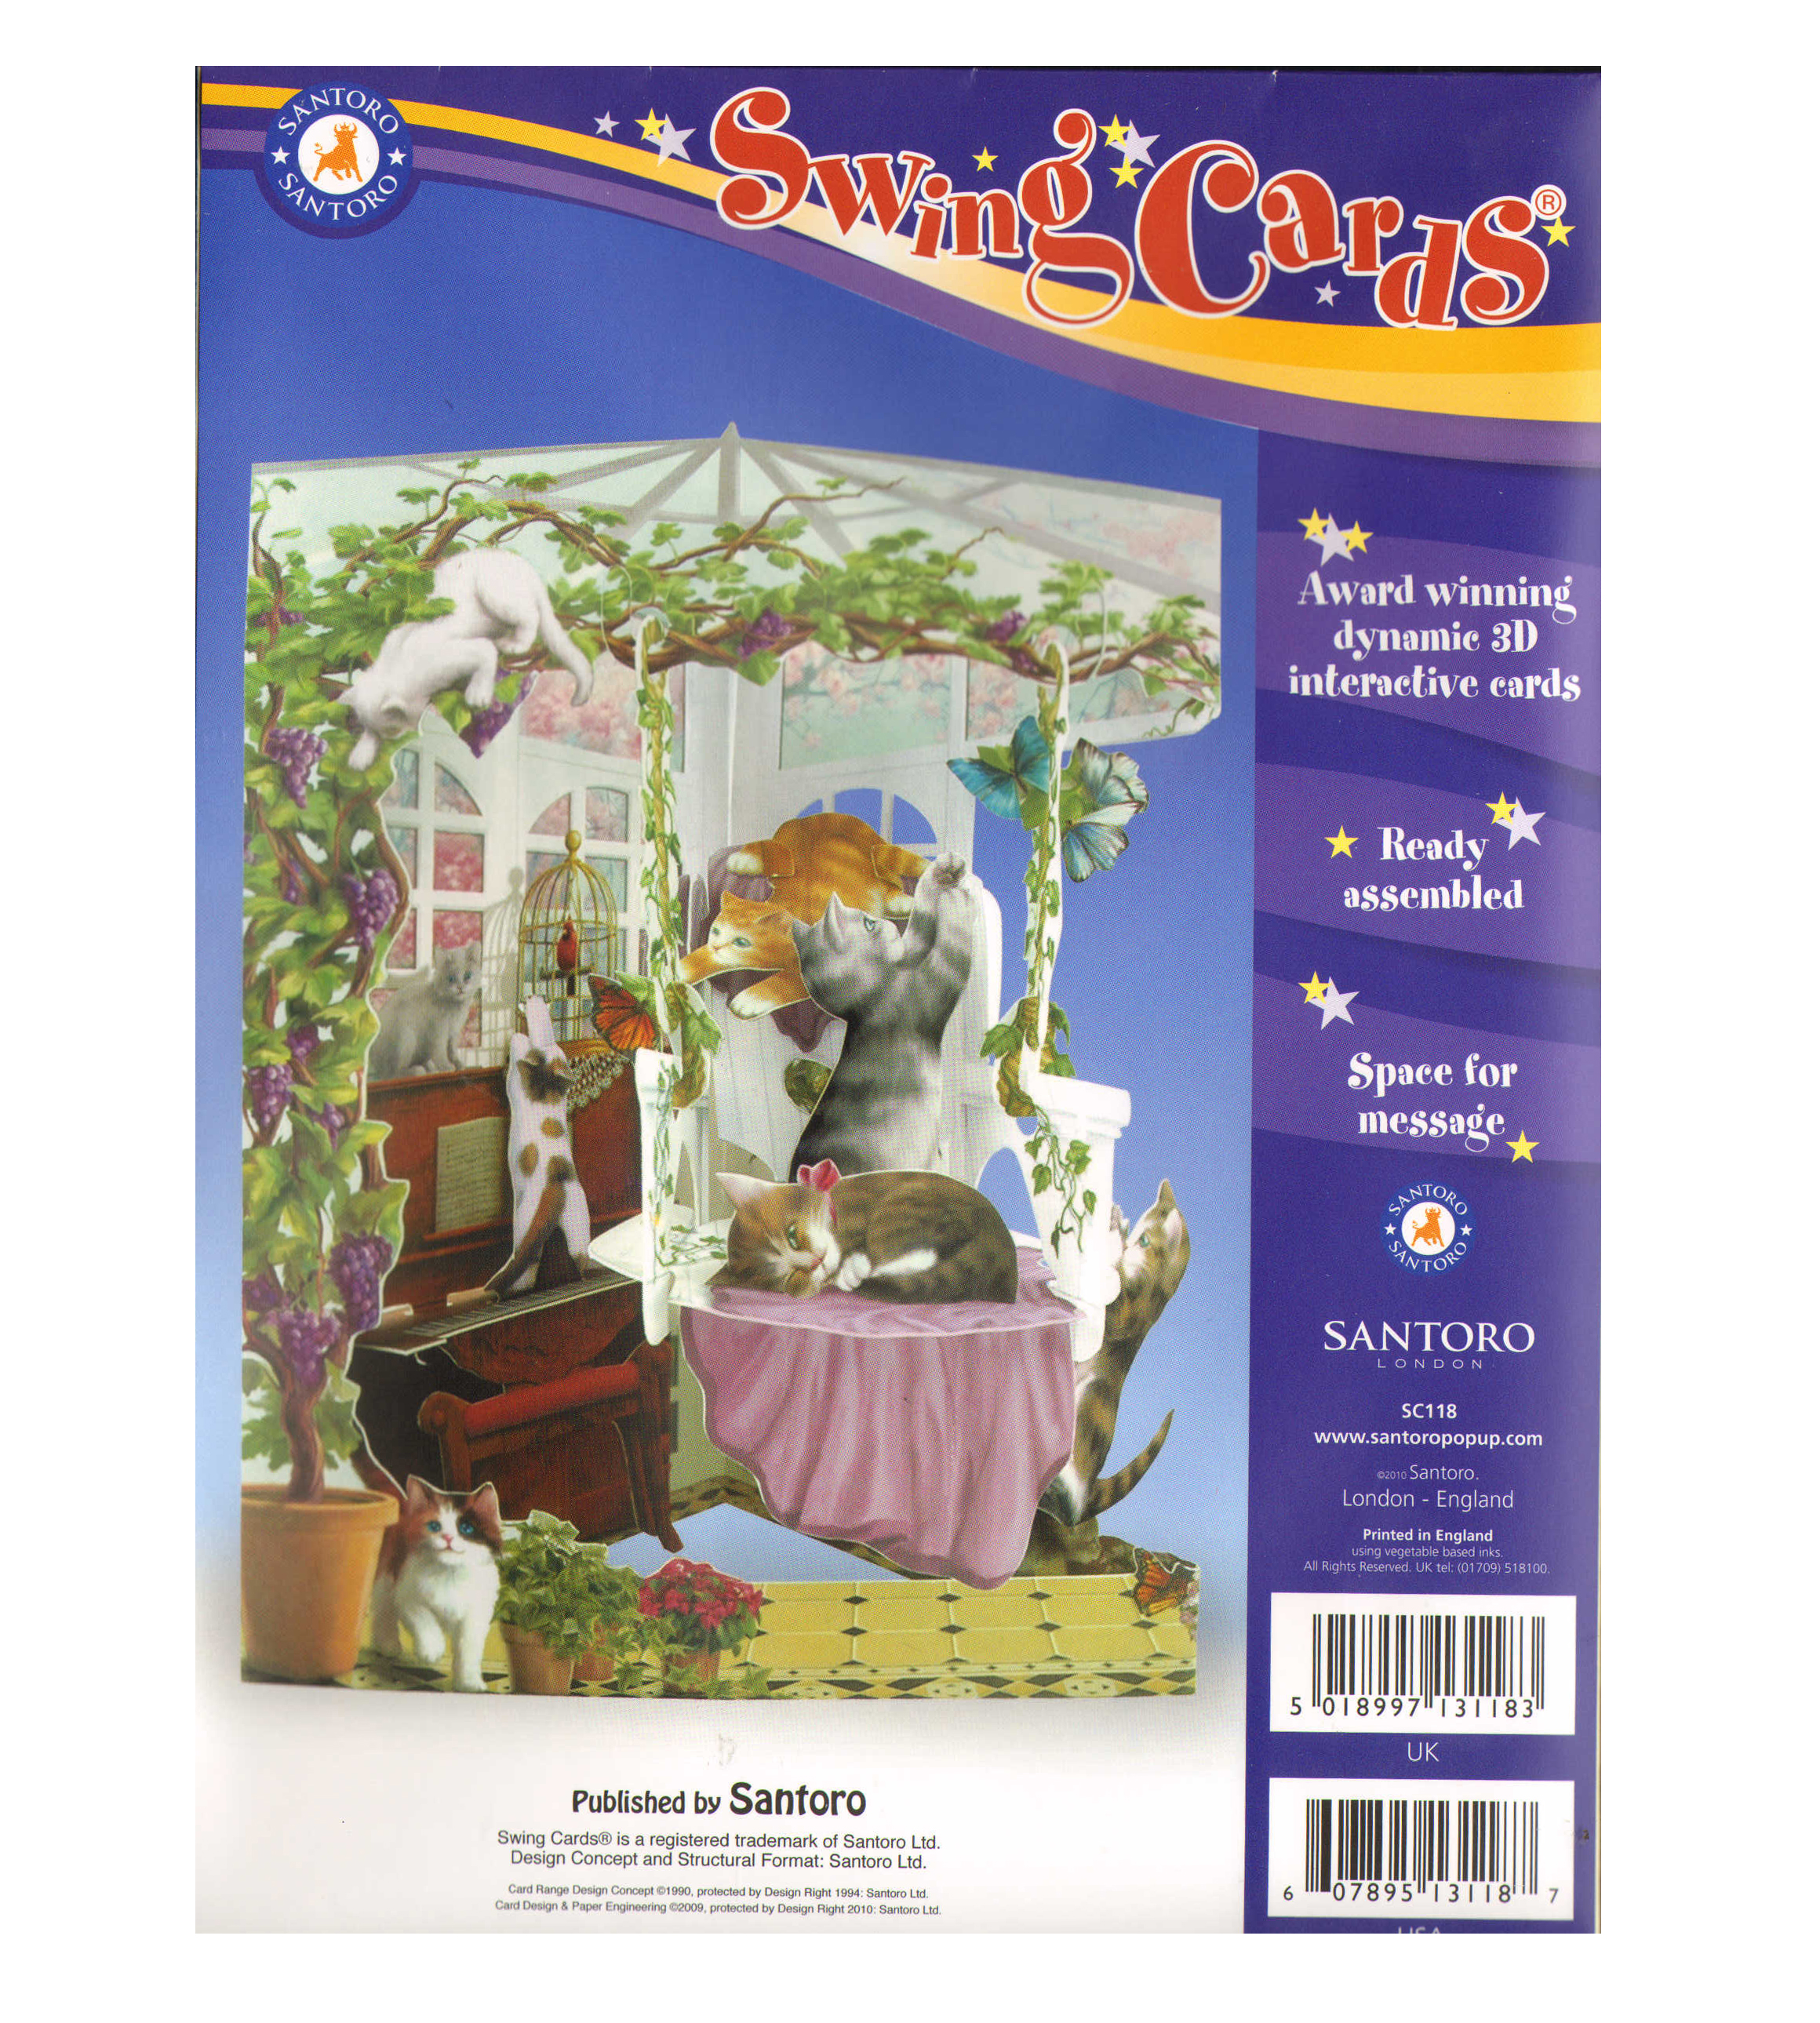 Cats in conservatory swing card award winning dynamic 3d cats in conservatory swing card award winning dynamic 3d interactive greetings card kristyandbryce Image collections